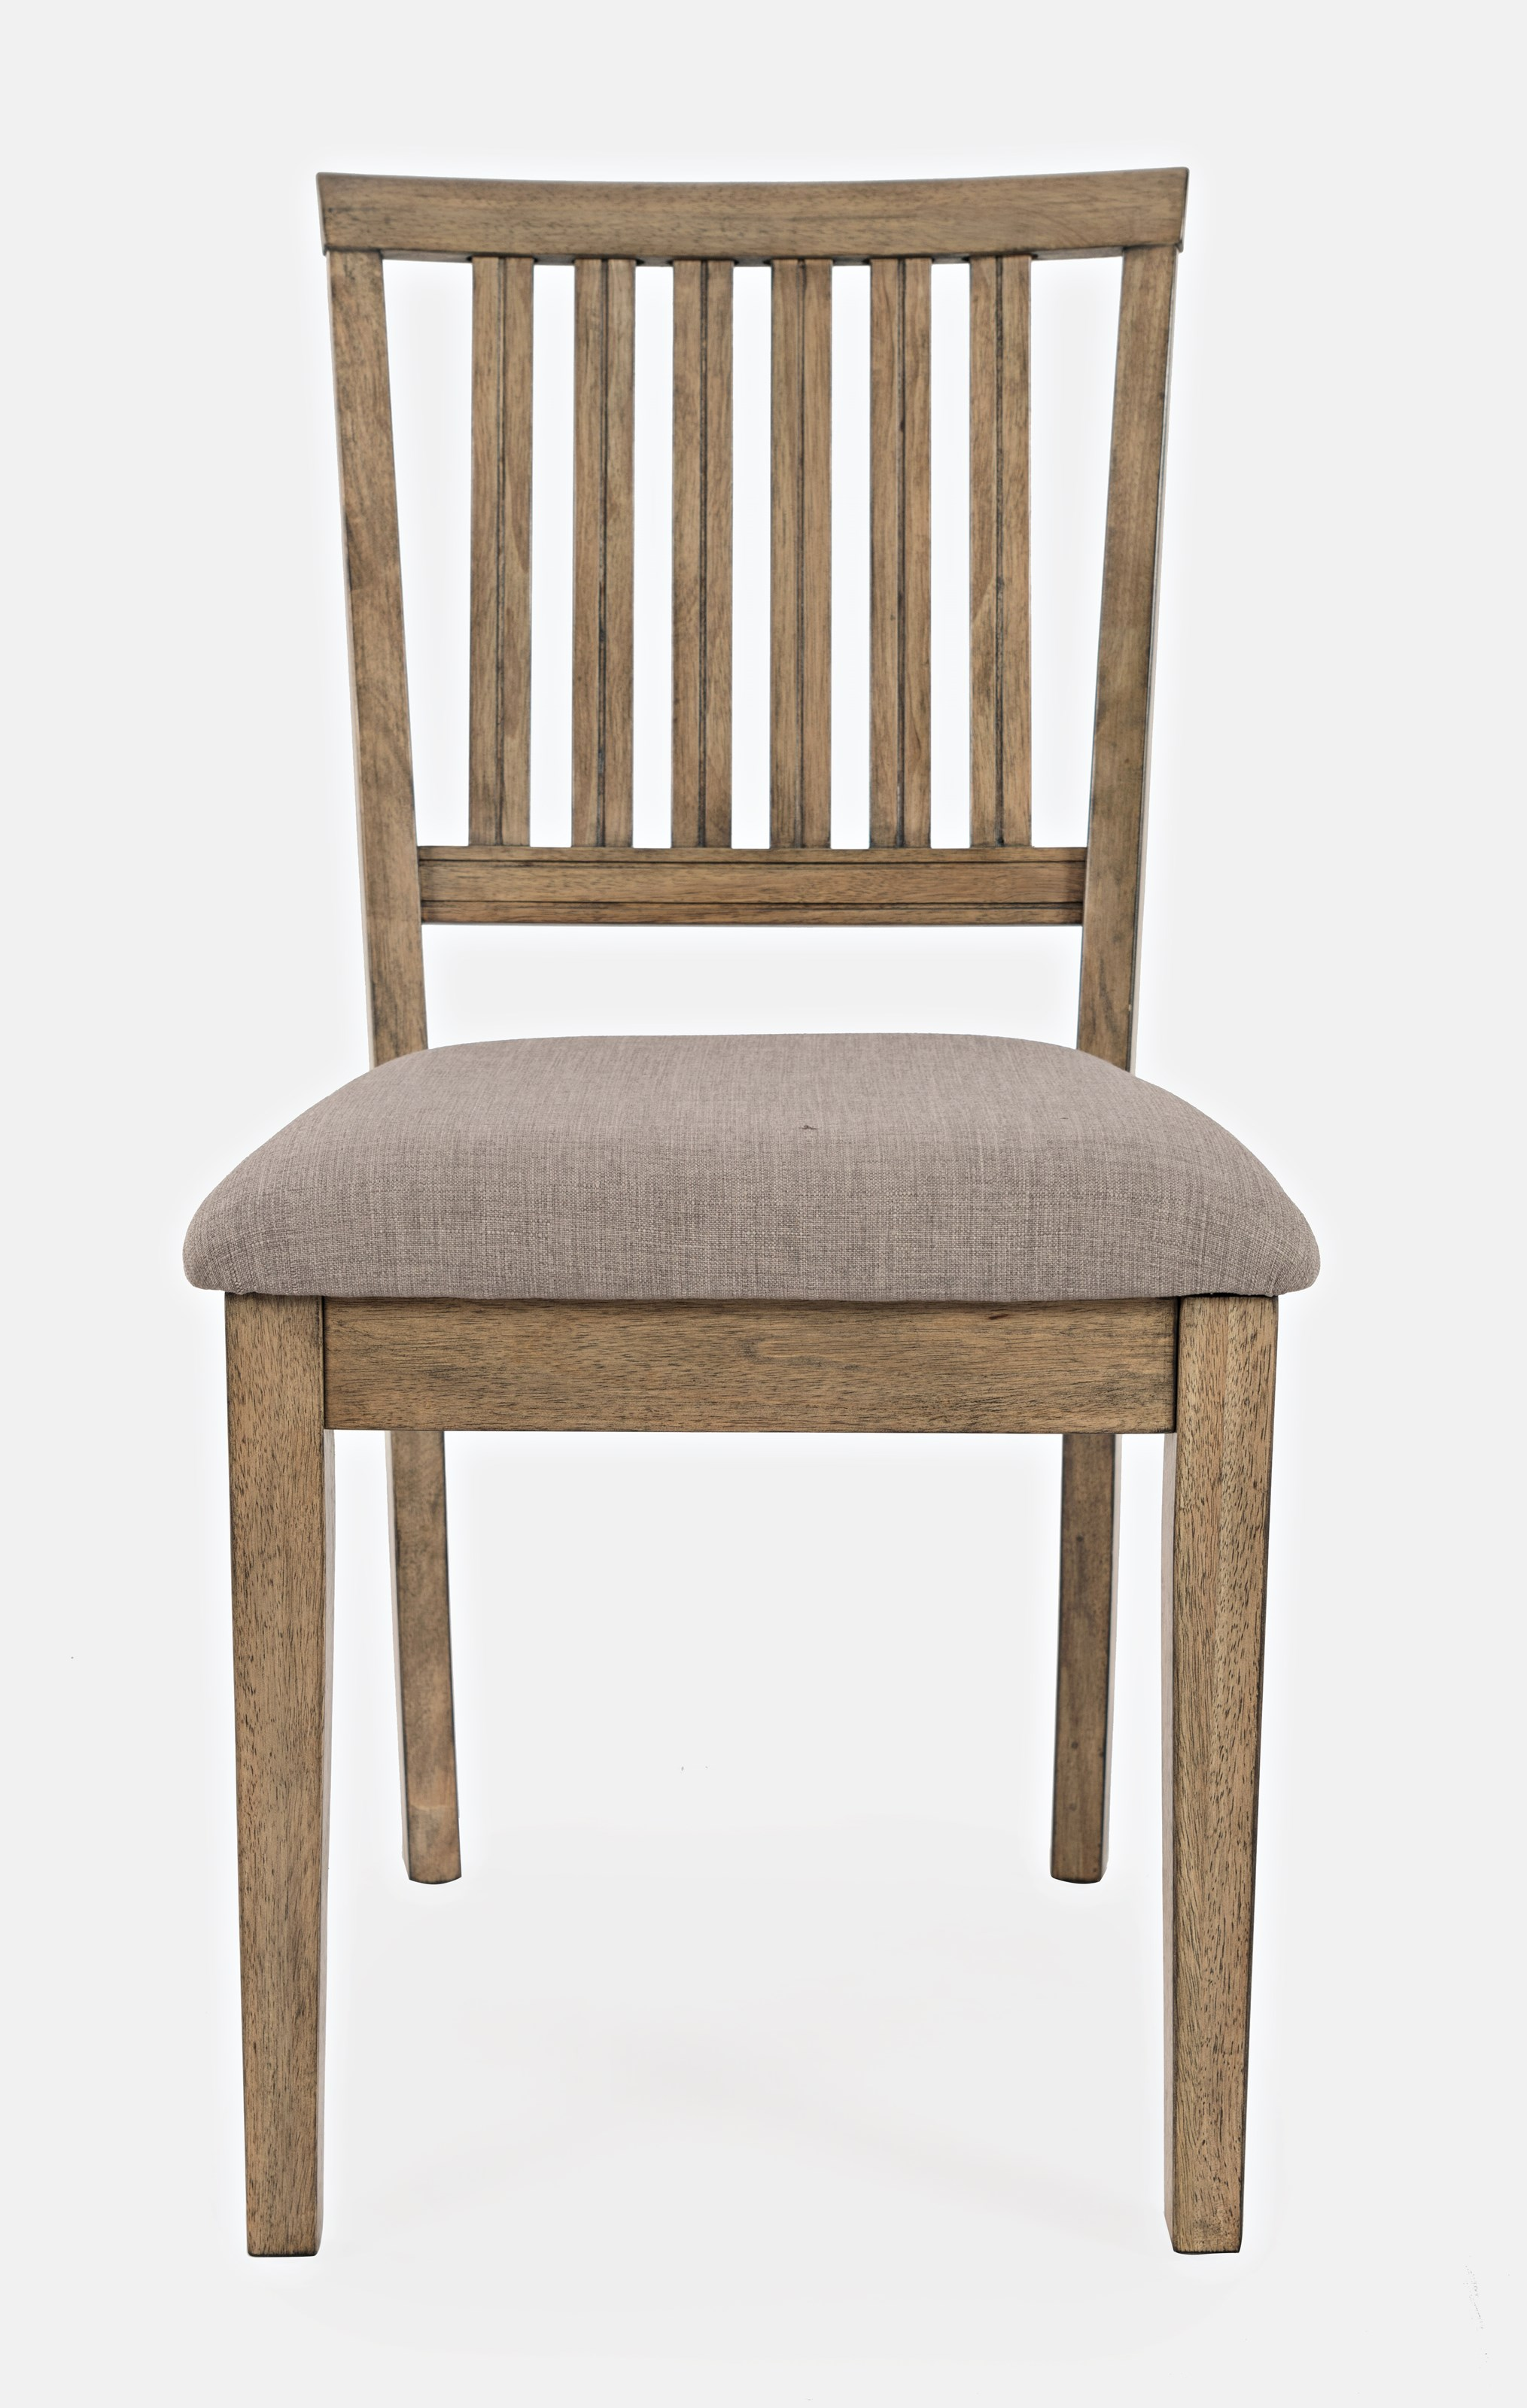 Prescott Park Slatback Chair (2/CTN) by Jofran at Sparks HomeStore